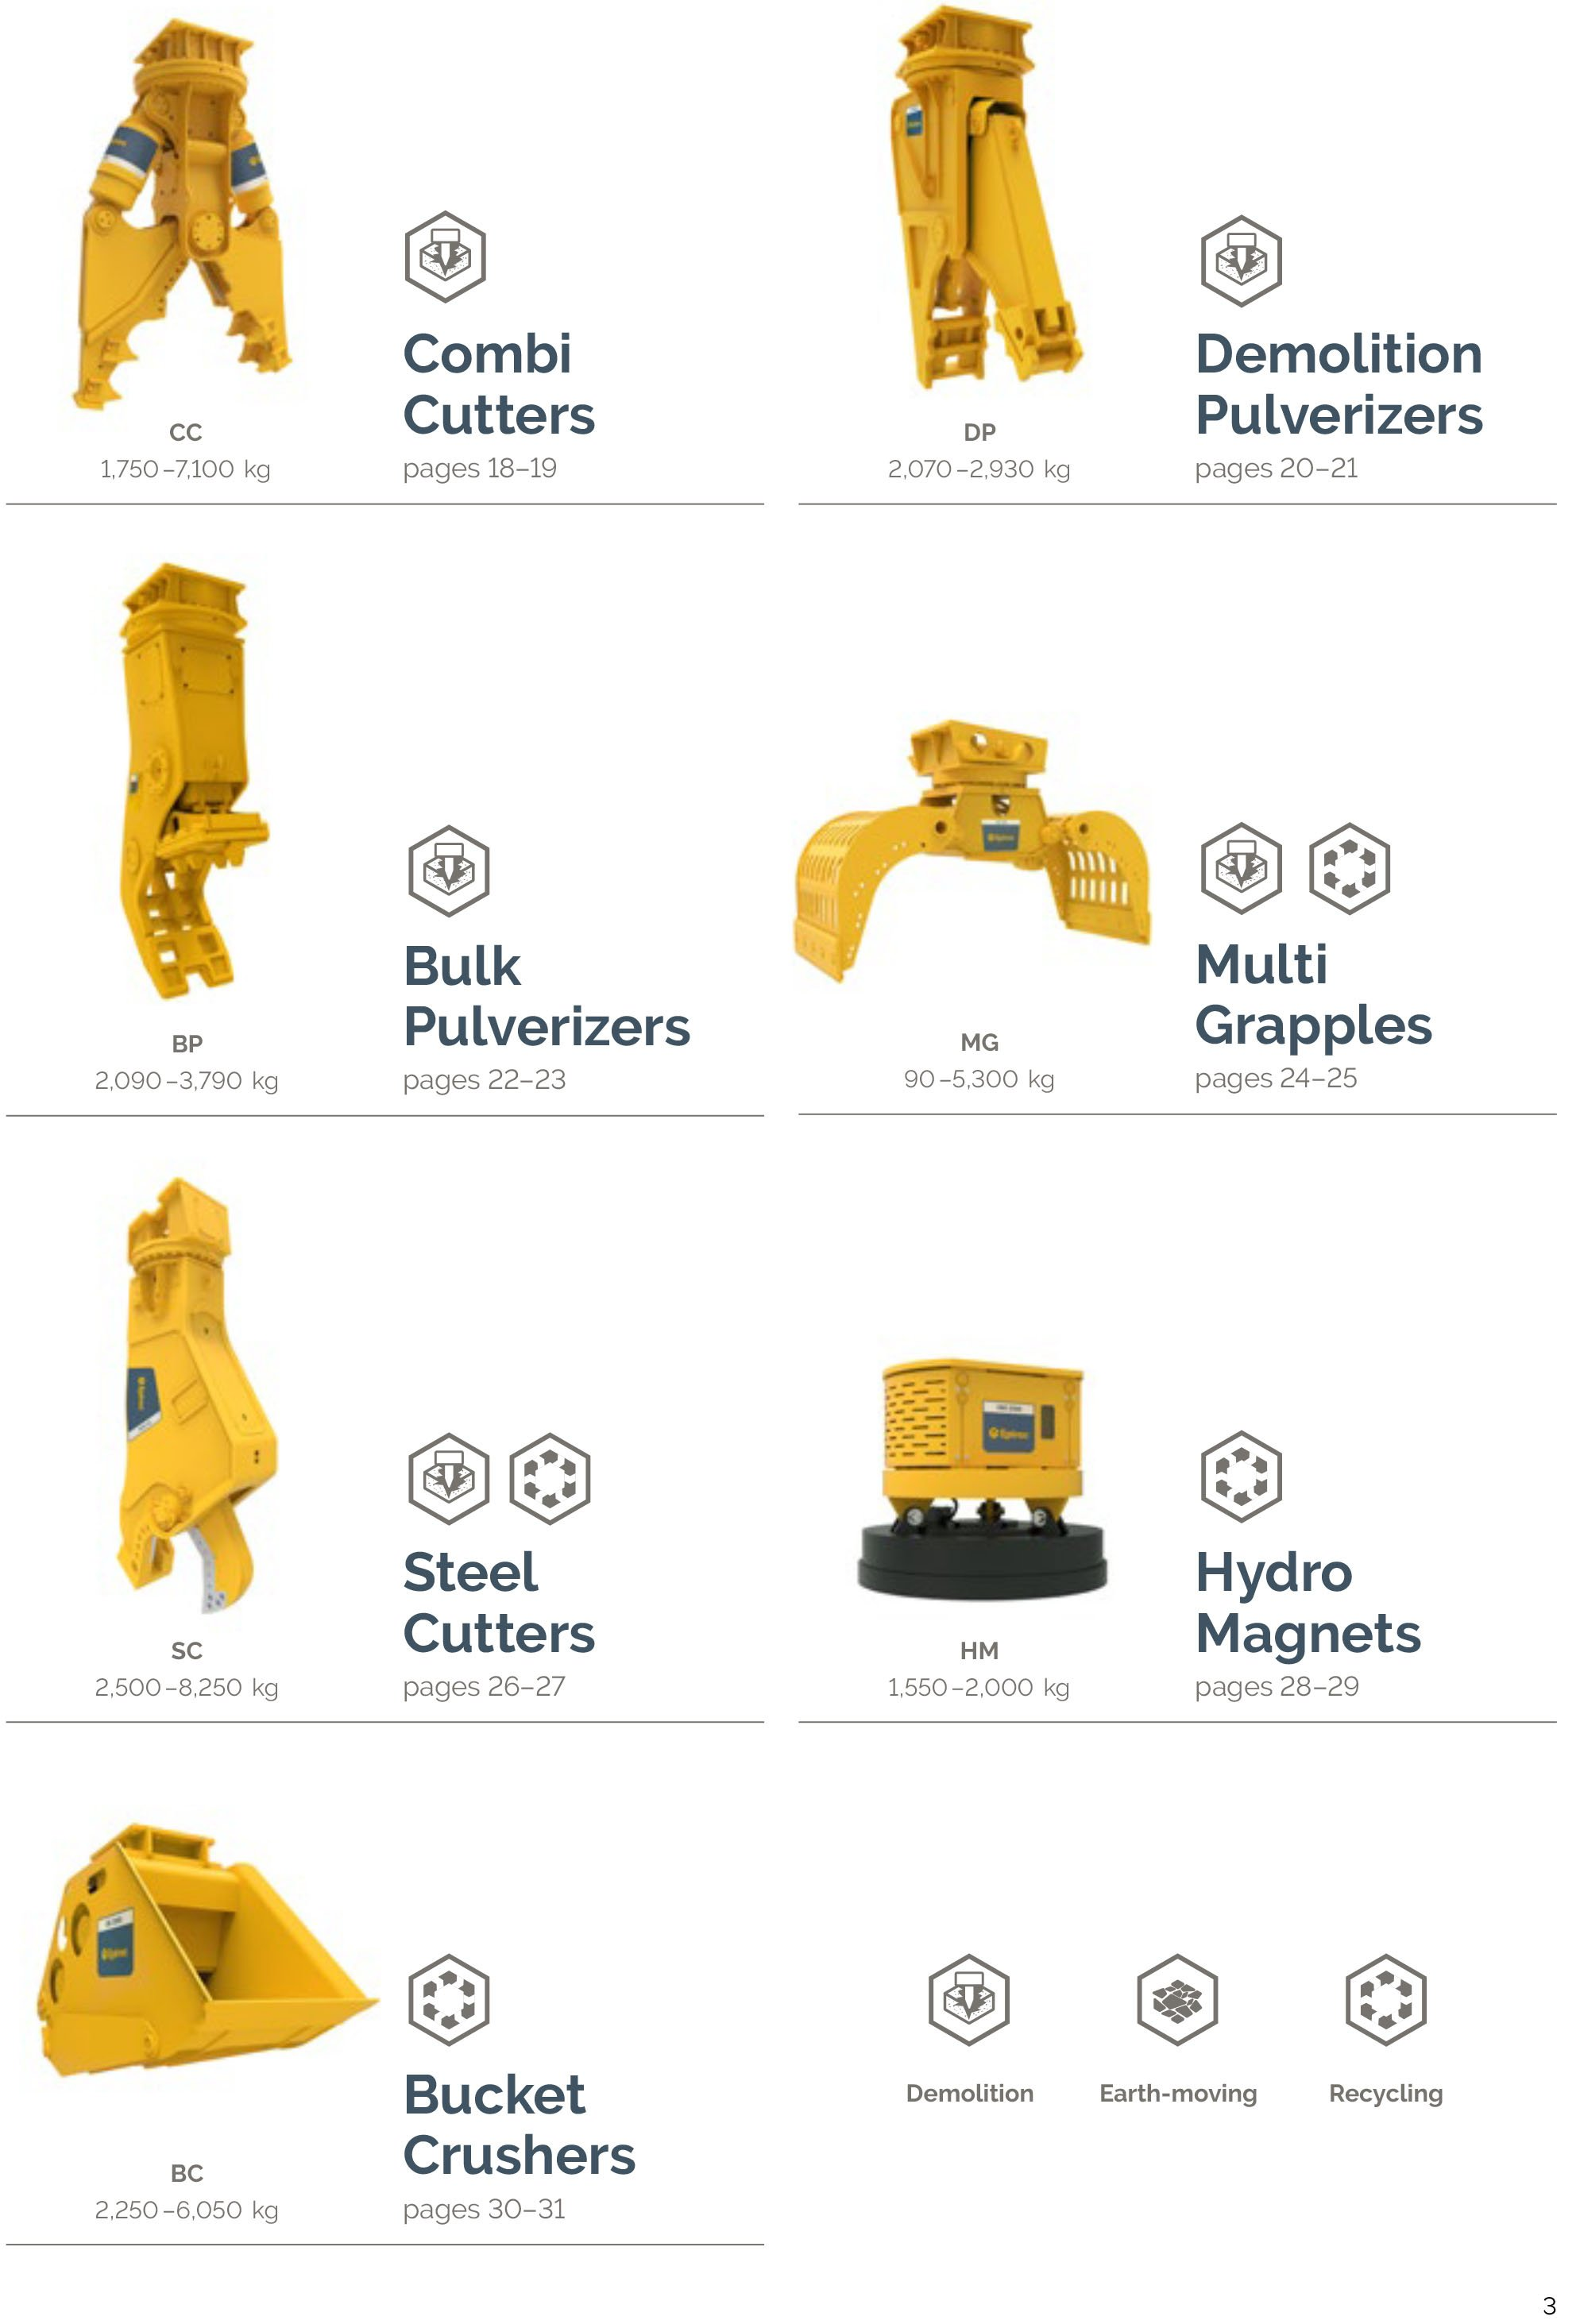 Cutters, Pulverizers, Grapples, Magnets & Crushers